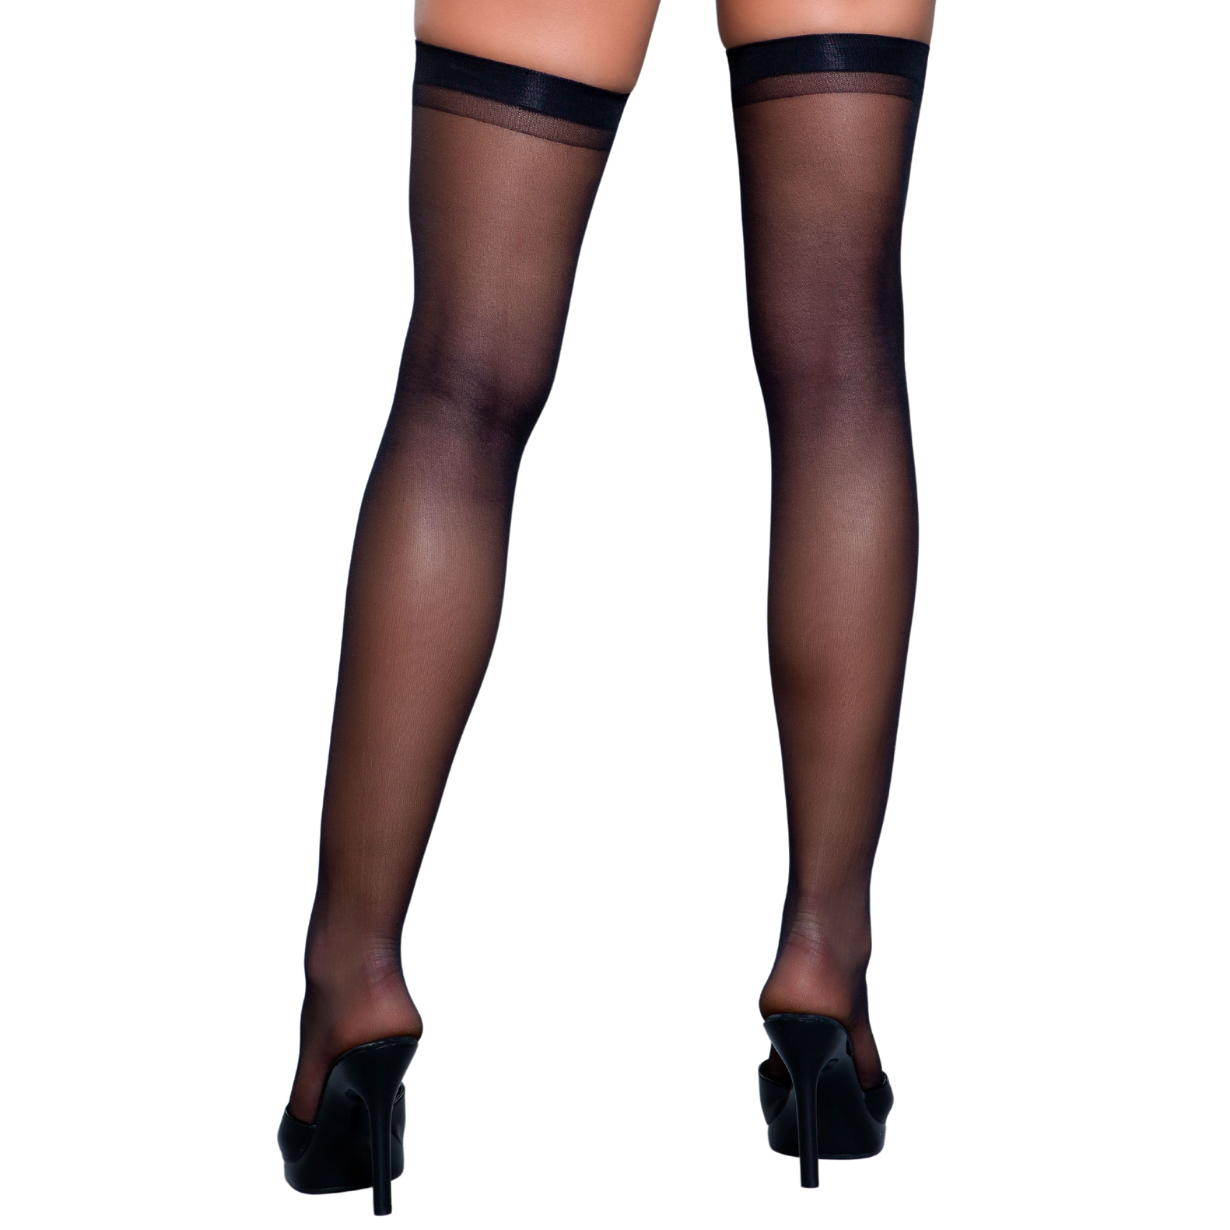 Be Wicked Best Behavior Thigh Highs Black - Cherry Blossom Intimates